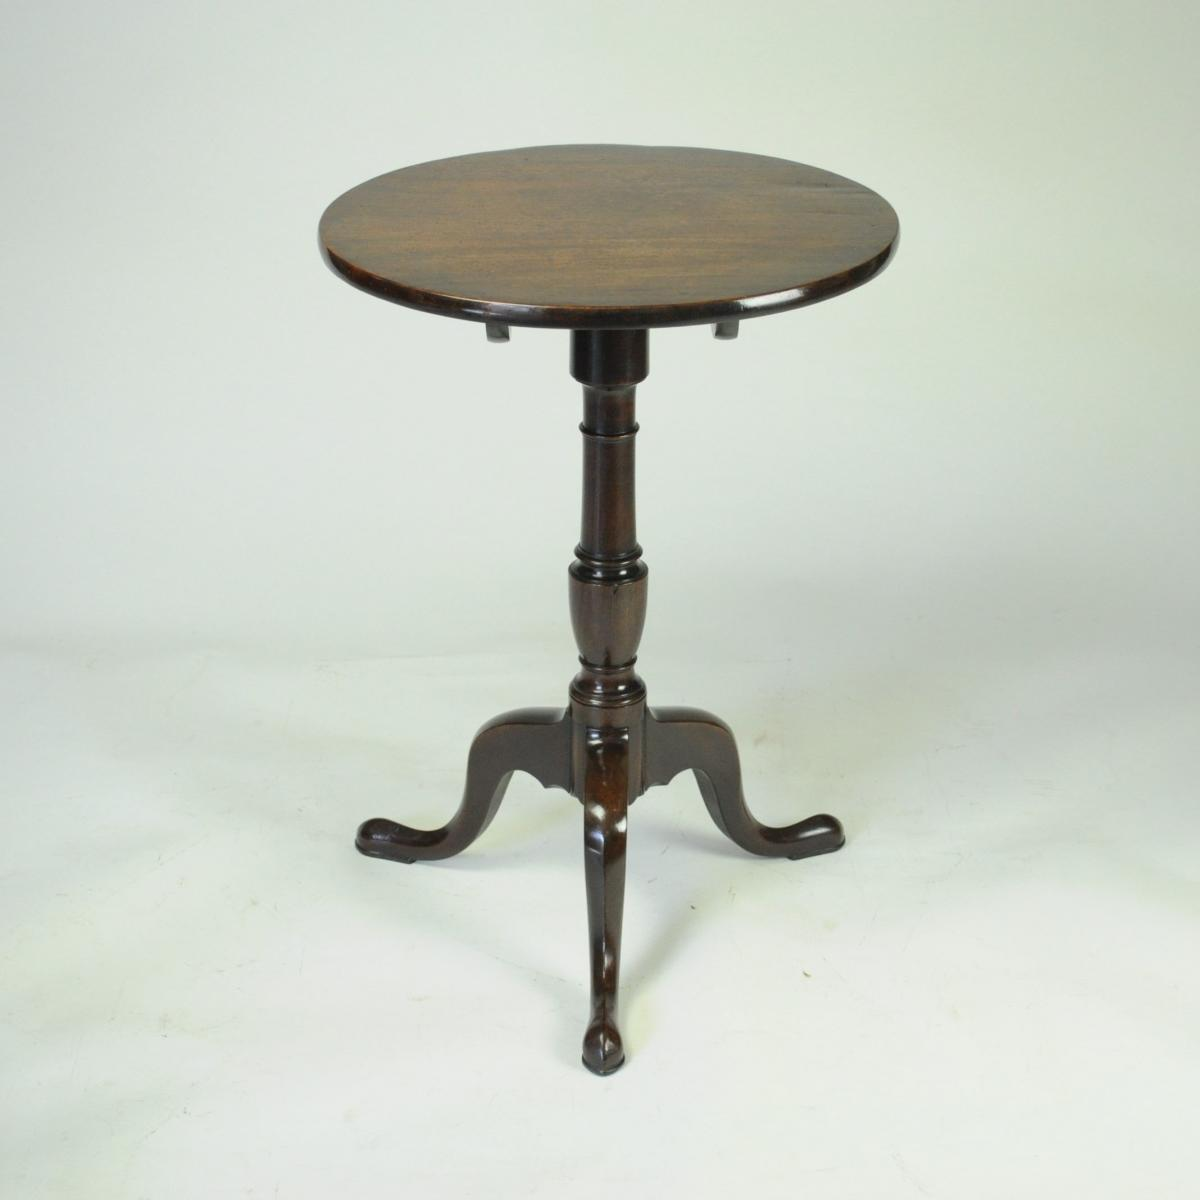 Small George III Mahogany Circular Tripod Table